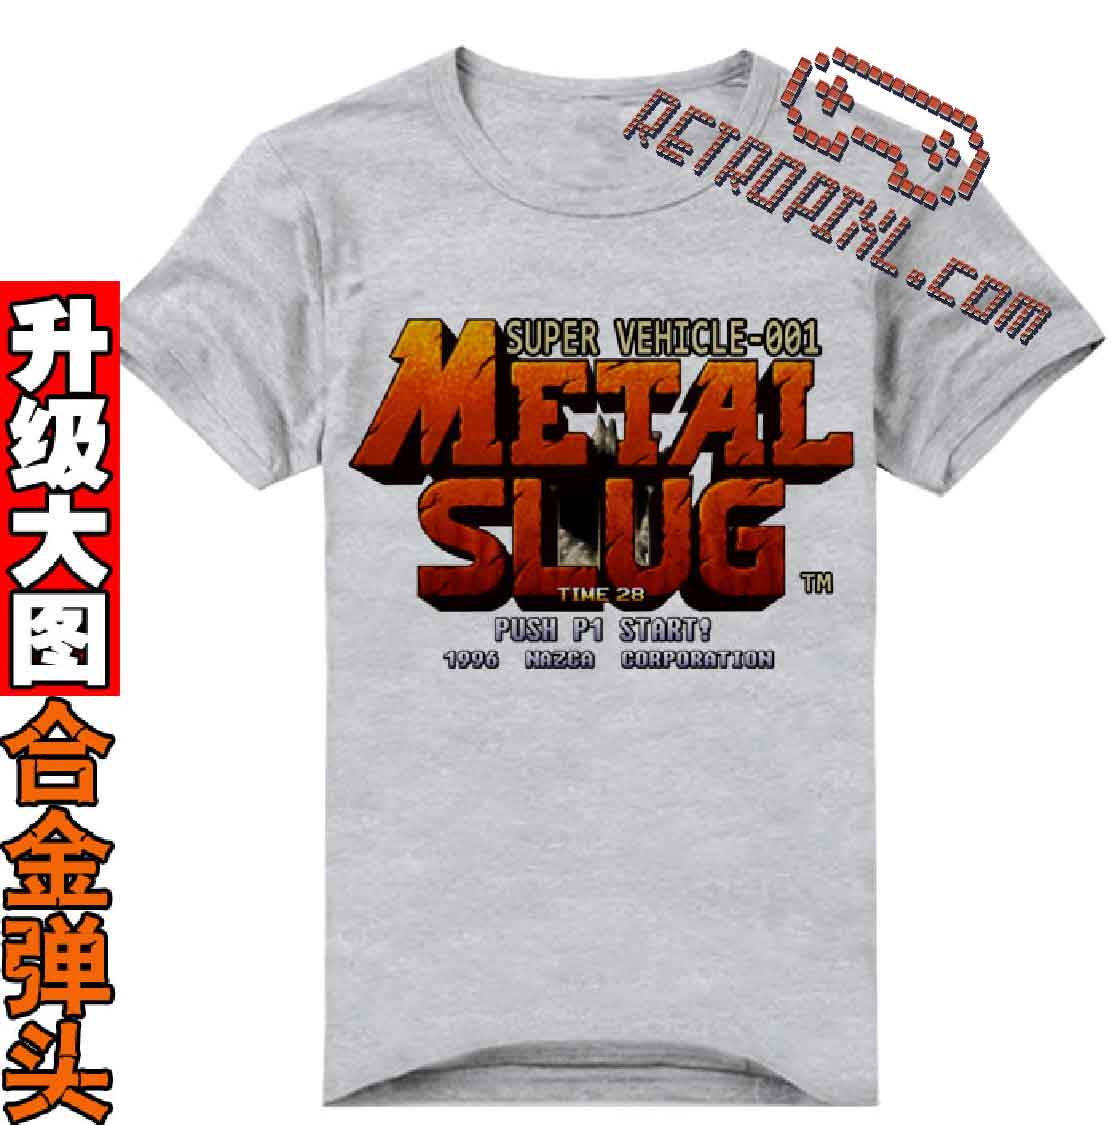 RetroPixl Retro Goodies retrogaming Metal Slug T-shirt Tshirt